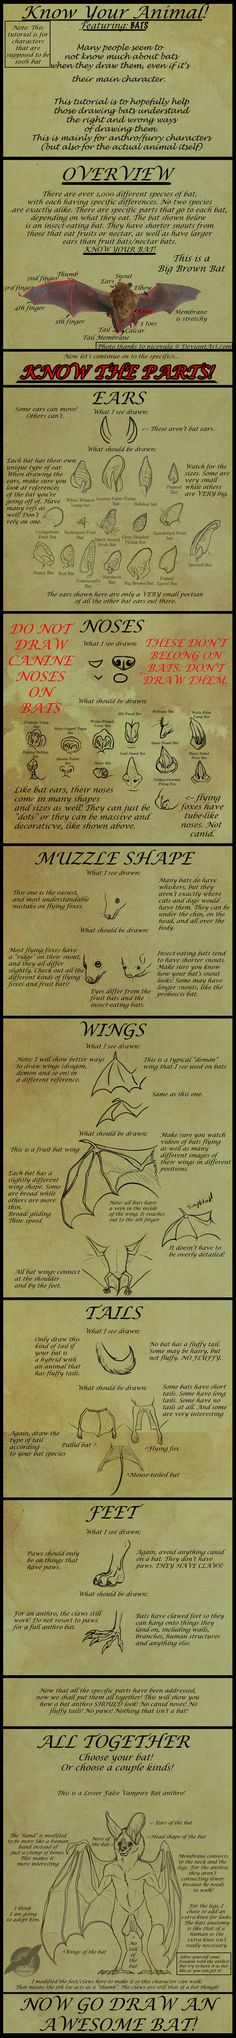 How to Draw Correct Bat Parts on Anthros by shorty-antics-27.deviantart.com on @deviantART